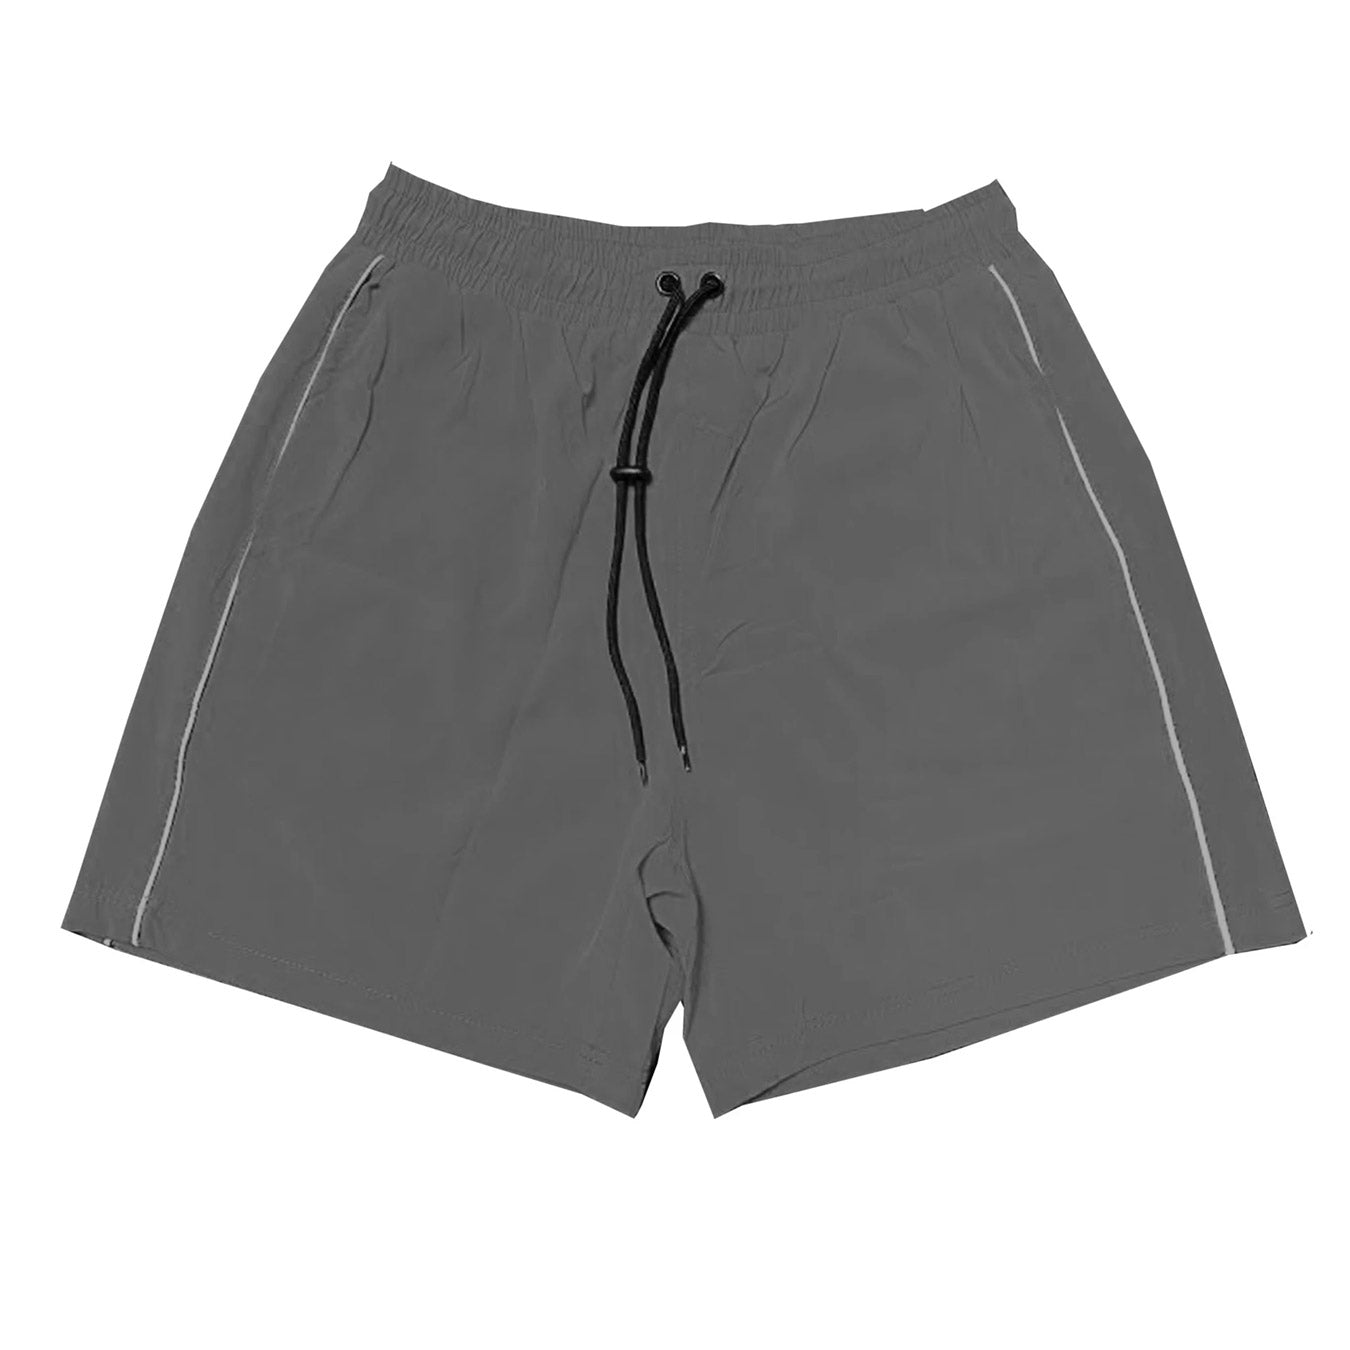 "ByKiy 3M Stretchbreaker Short ""Cool Grey"""